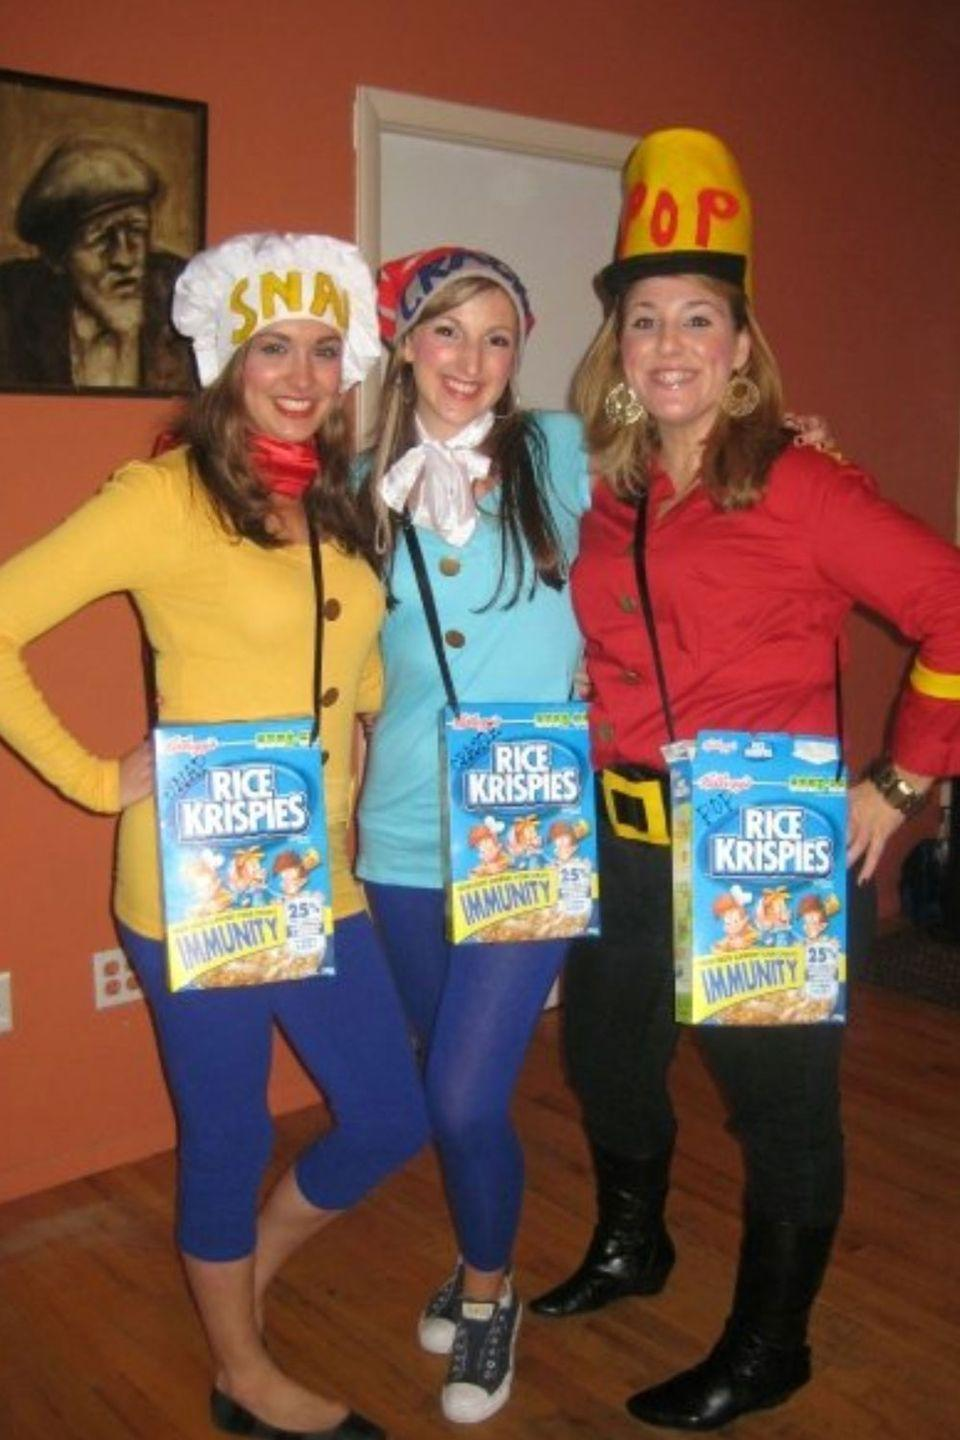 "<p>The Rice Krispies elves is the kind of group costume that everyone will love. Toss in someone wearing a Michael Myers costume and then you have a <em>cereal</em> killer.</p><p><strong>RELATED: </strong><a href=""https://www.goodhousekeeping.com/holidays/halloween-ideas/g1422/group-halloween-costumes/"" rel=""nofollow noopener"" target=""_blank"" data-ylk=""slk:45 Group Halloween Costumes That Prove You're Squad Goals"" class=""link rapid-noclick-resp"">45 Group Halloween Costumes That Prove You're Squad Goals</a></p>"